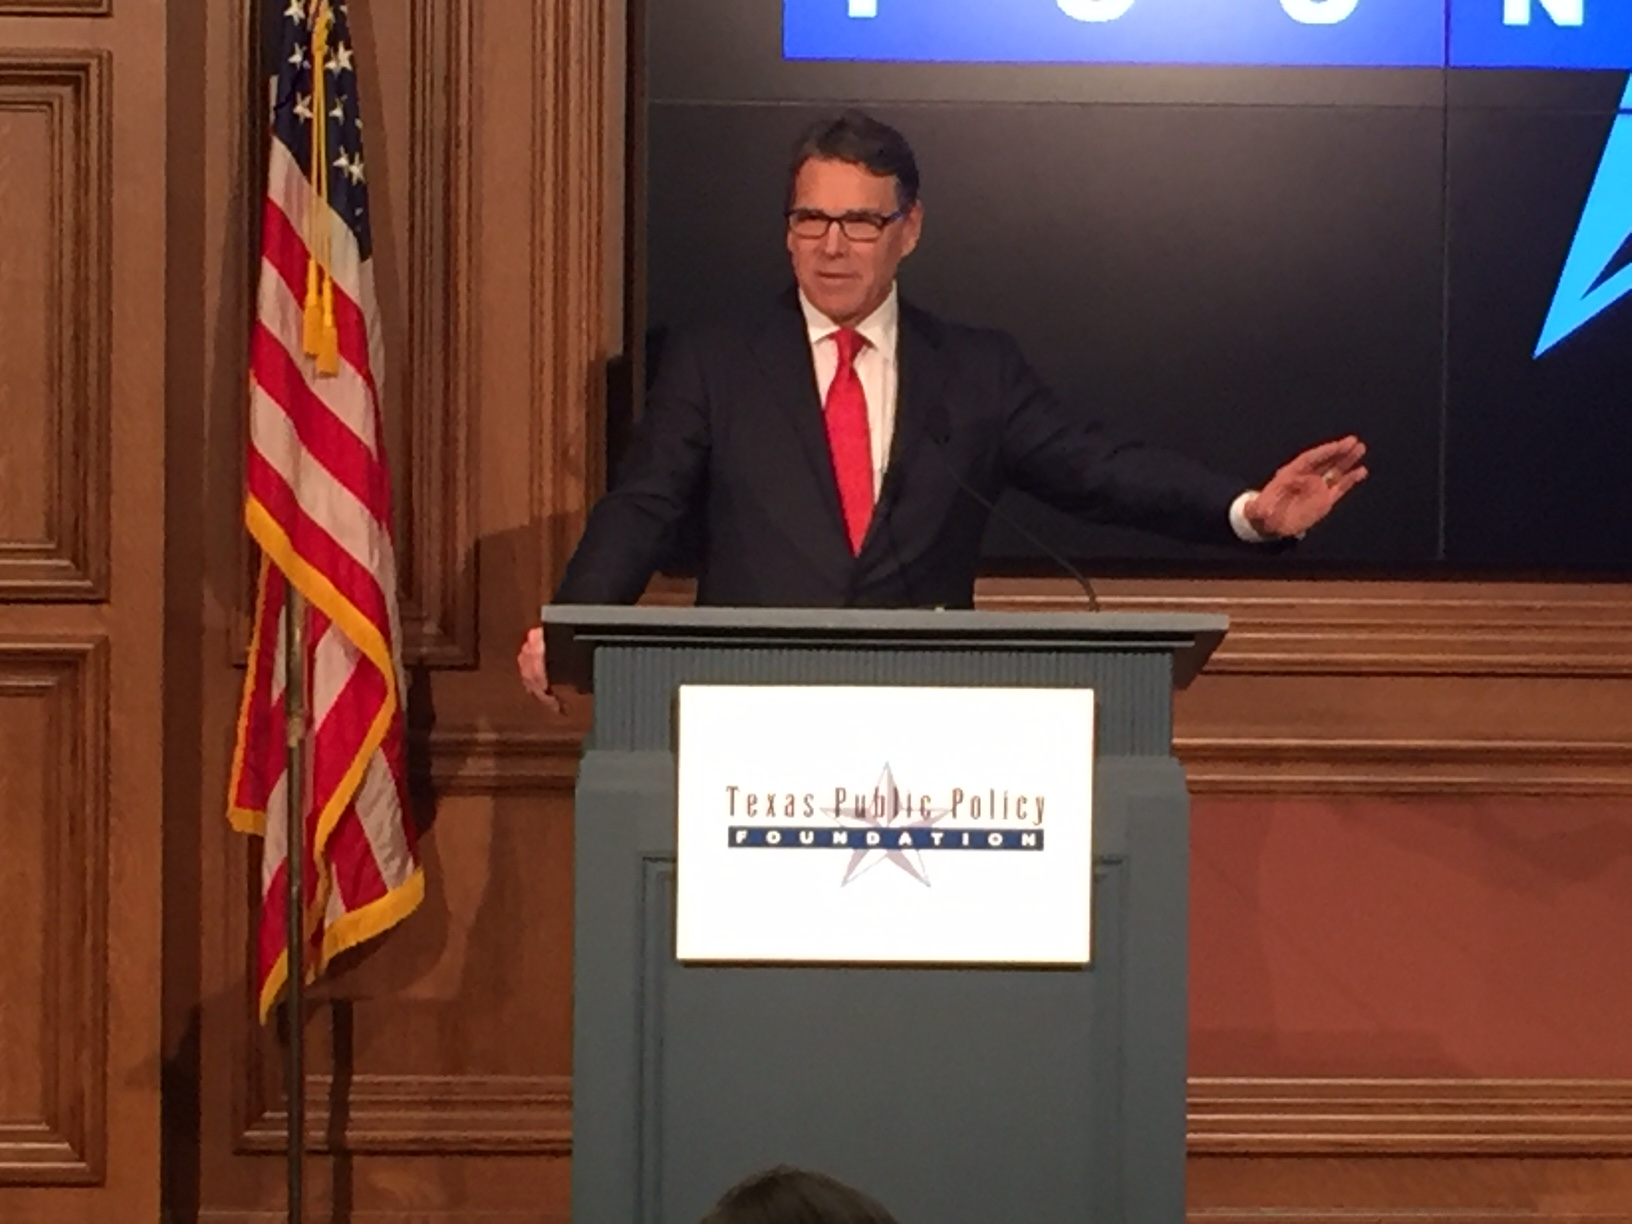 Rick Perry at Texas Public Policy